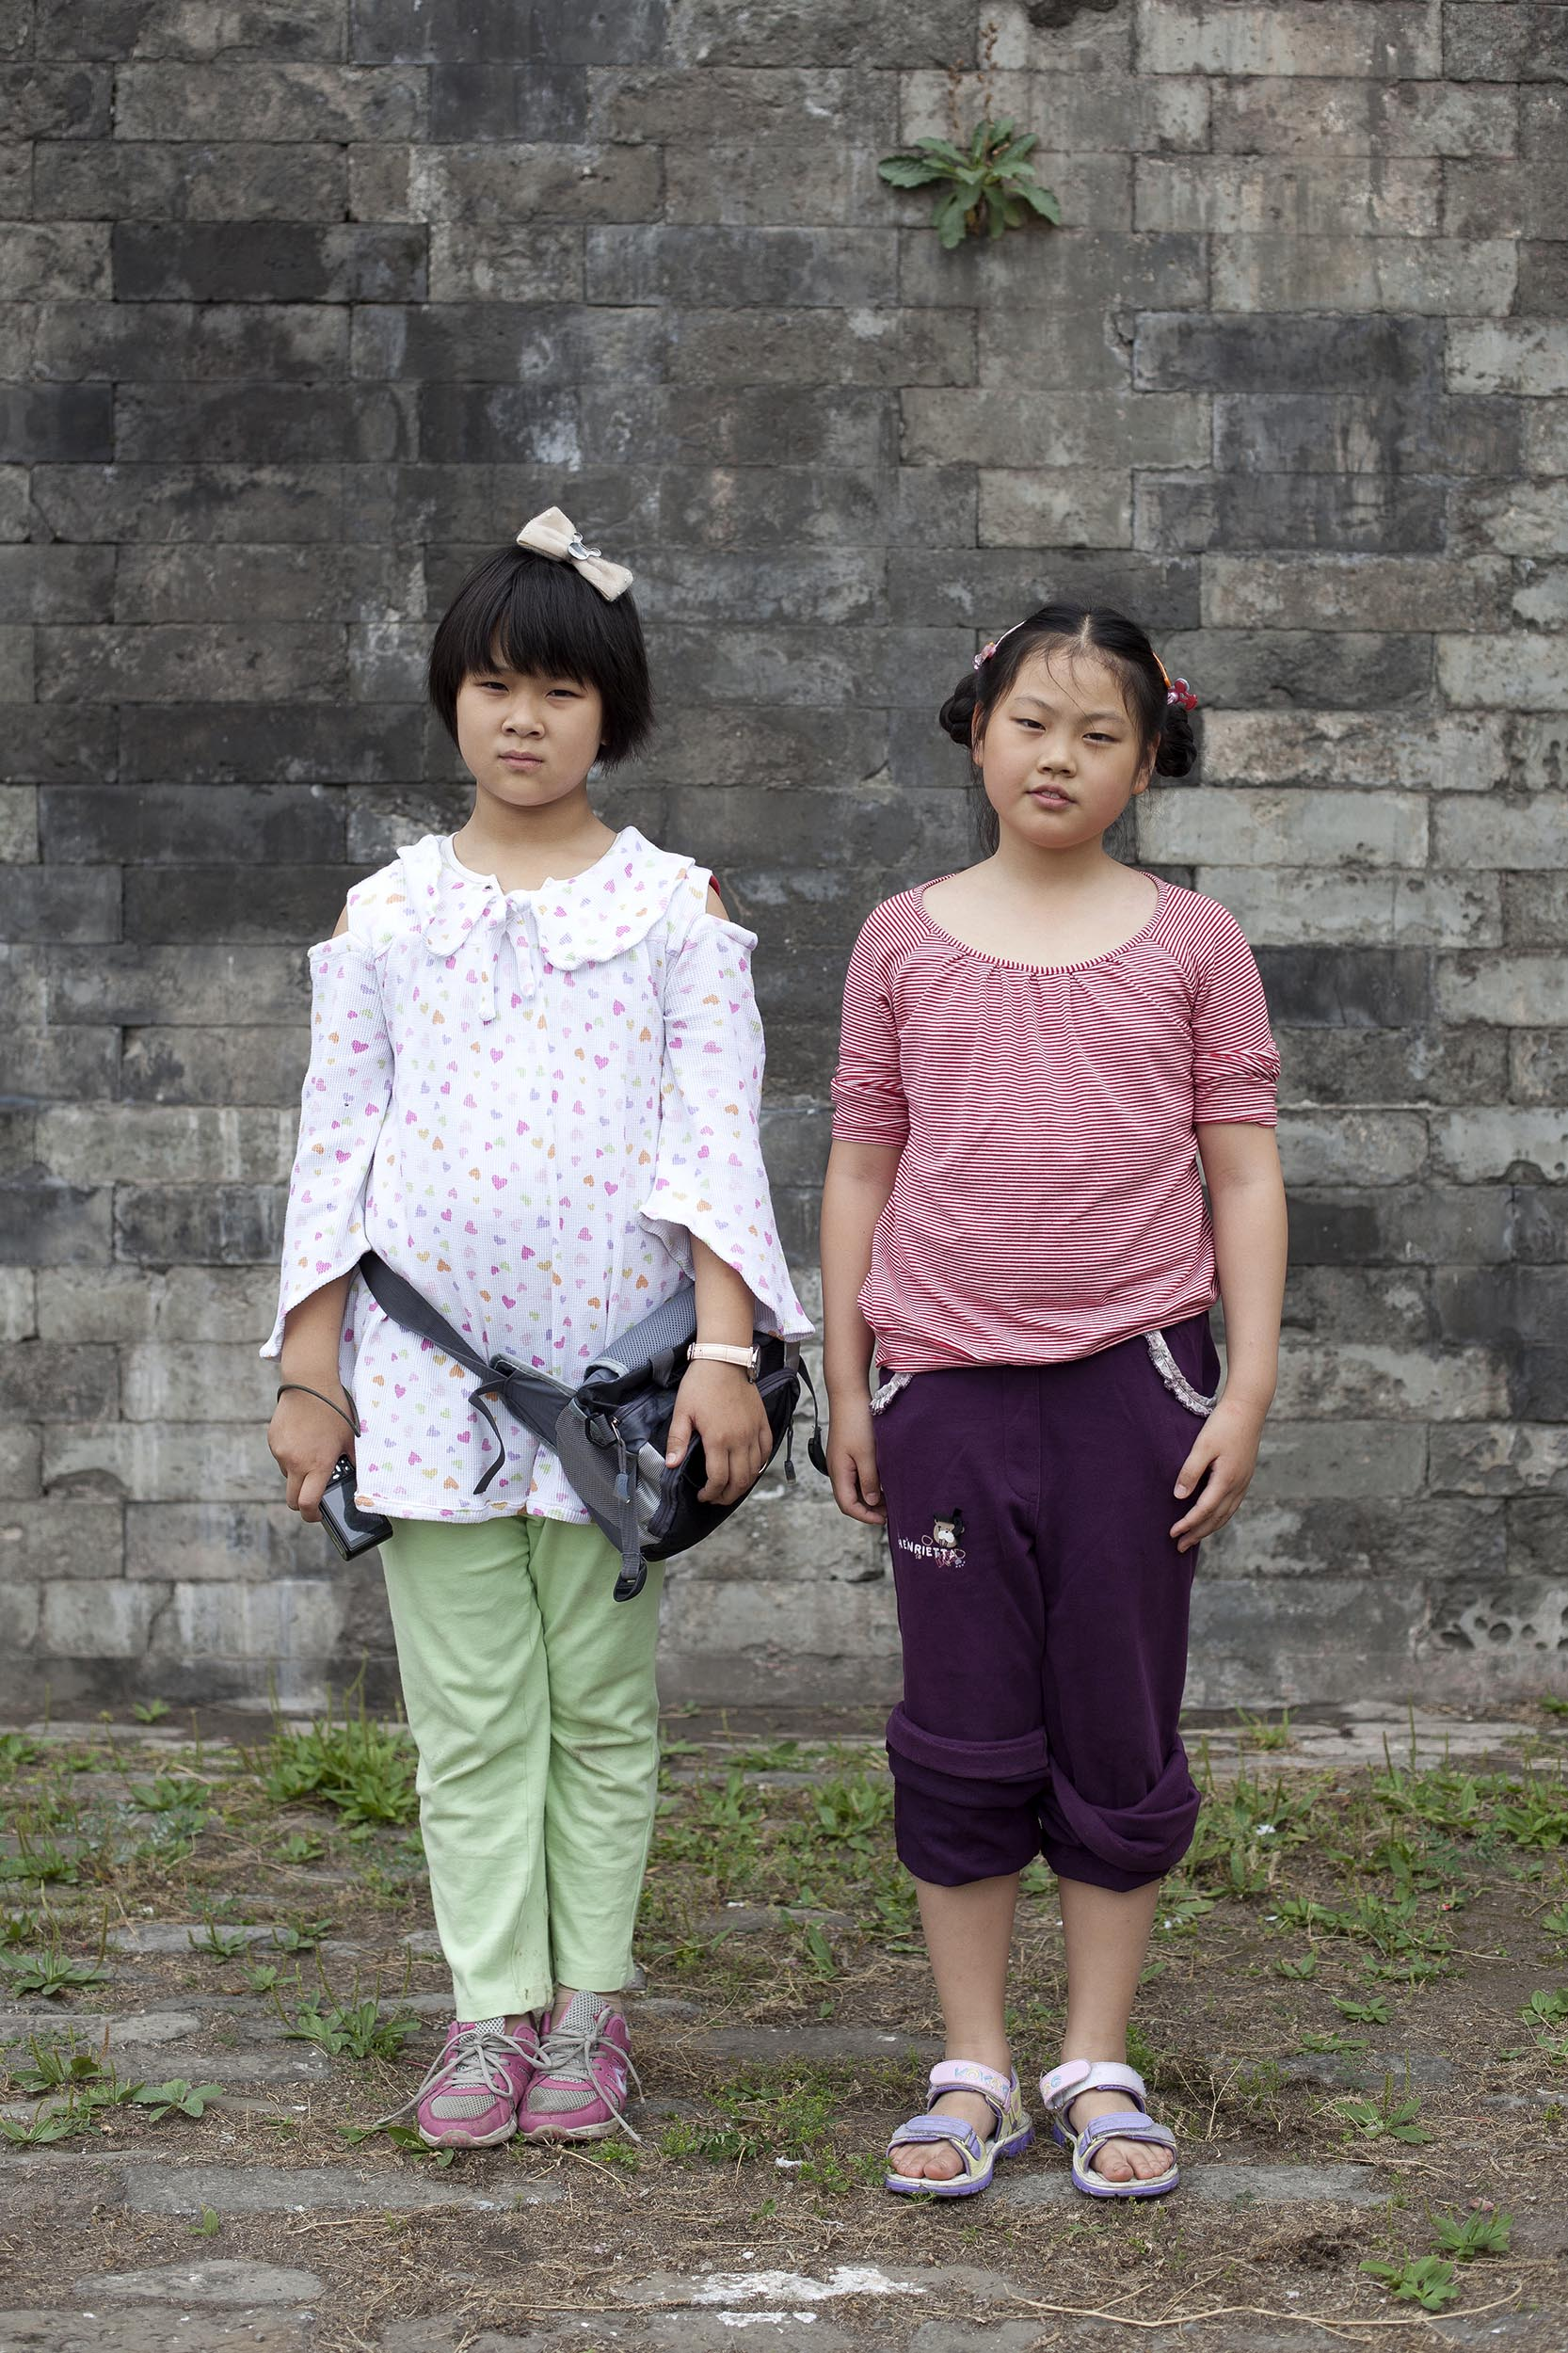 A portrait photograph of two young girls in the Forbidden City, Beijing , China  Documentary photography part of a personal project